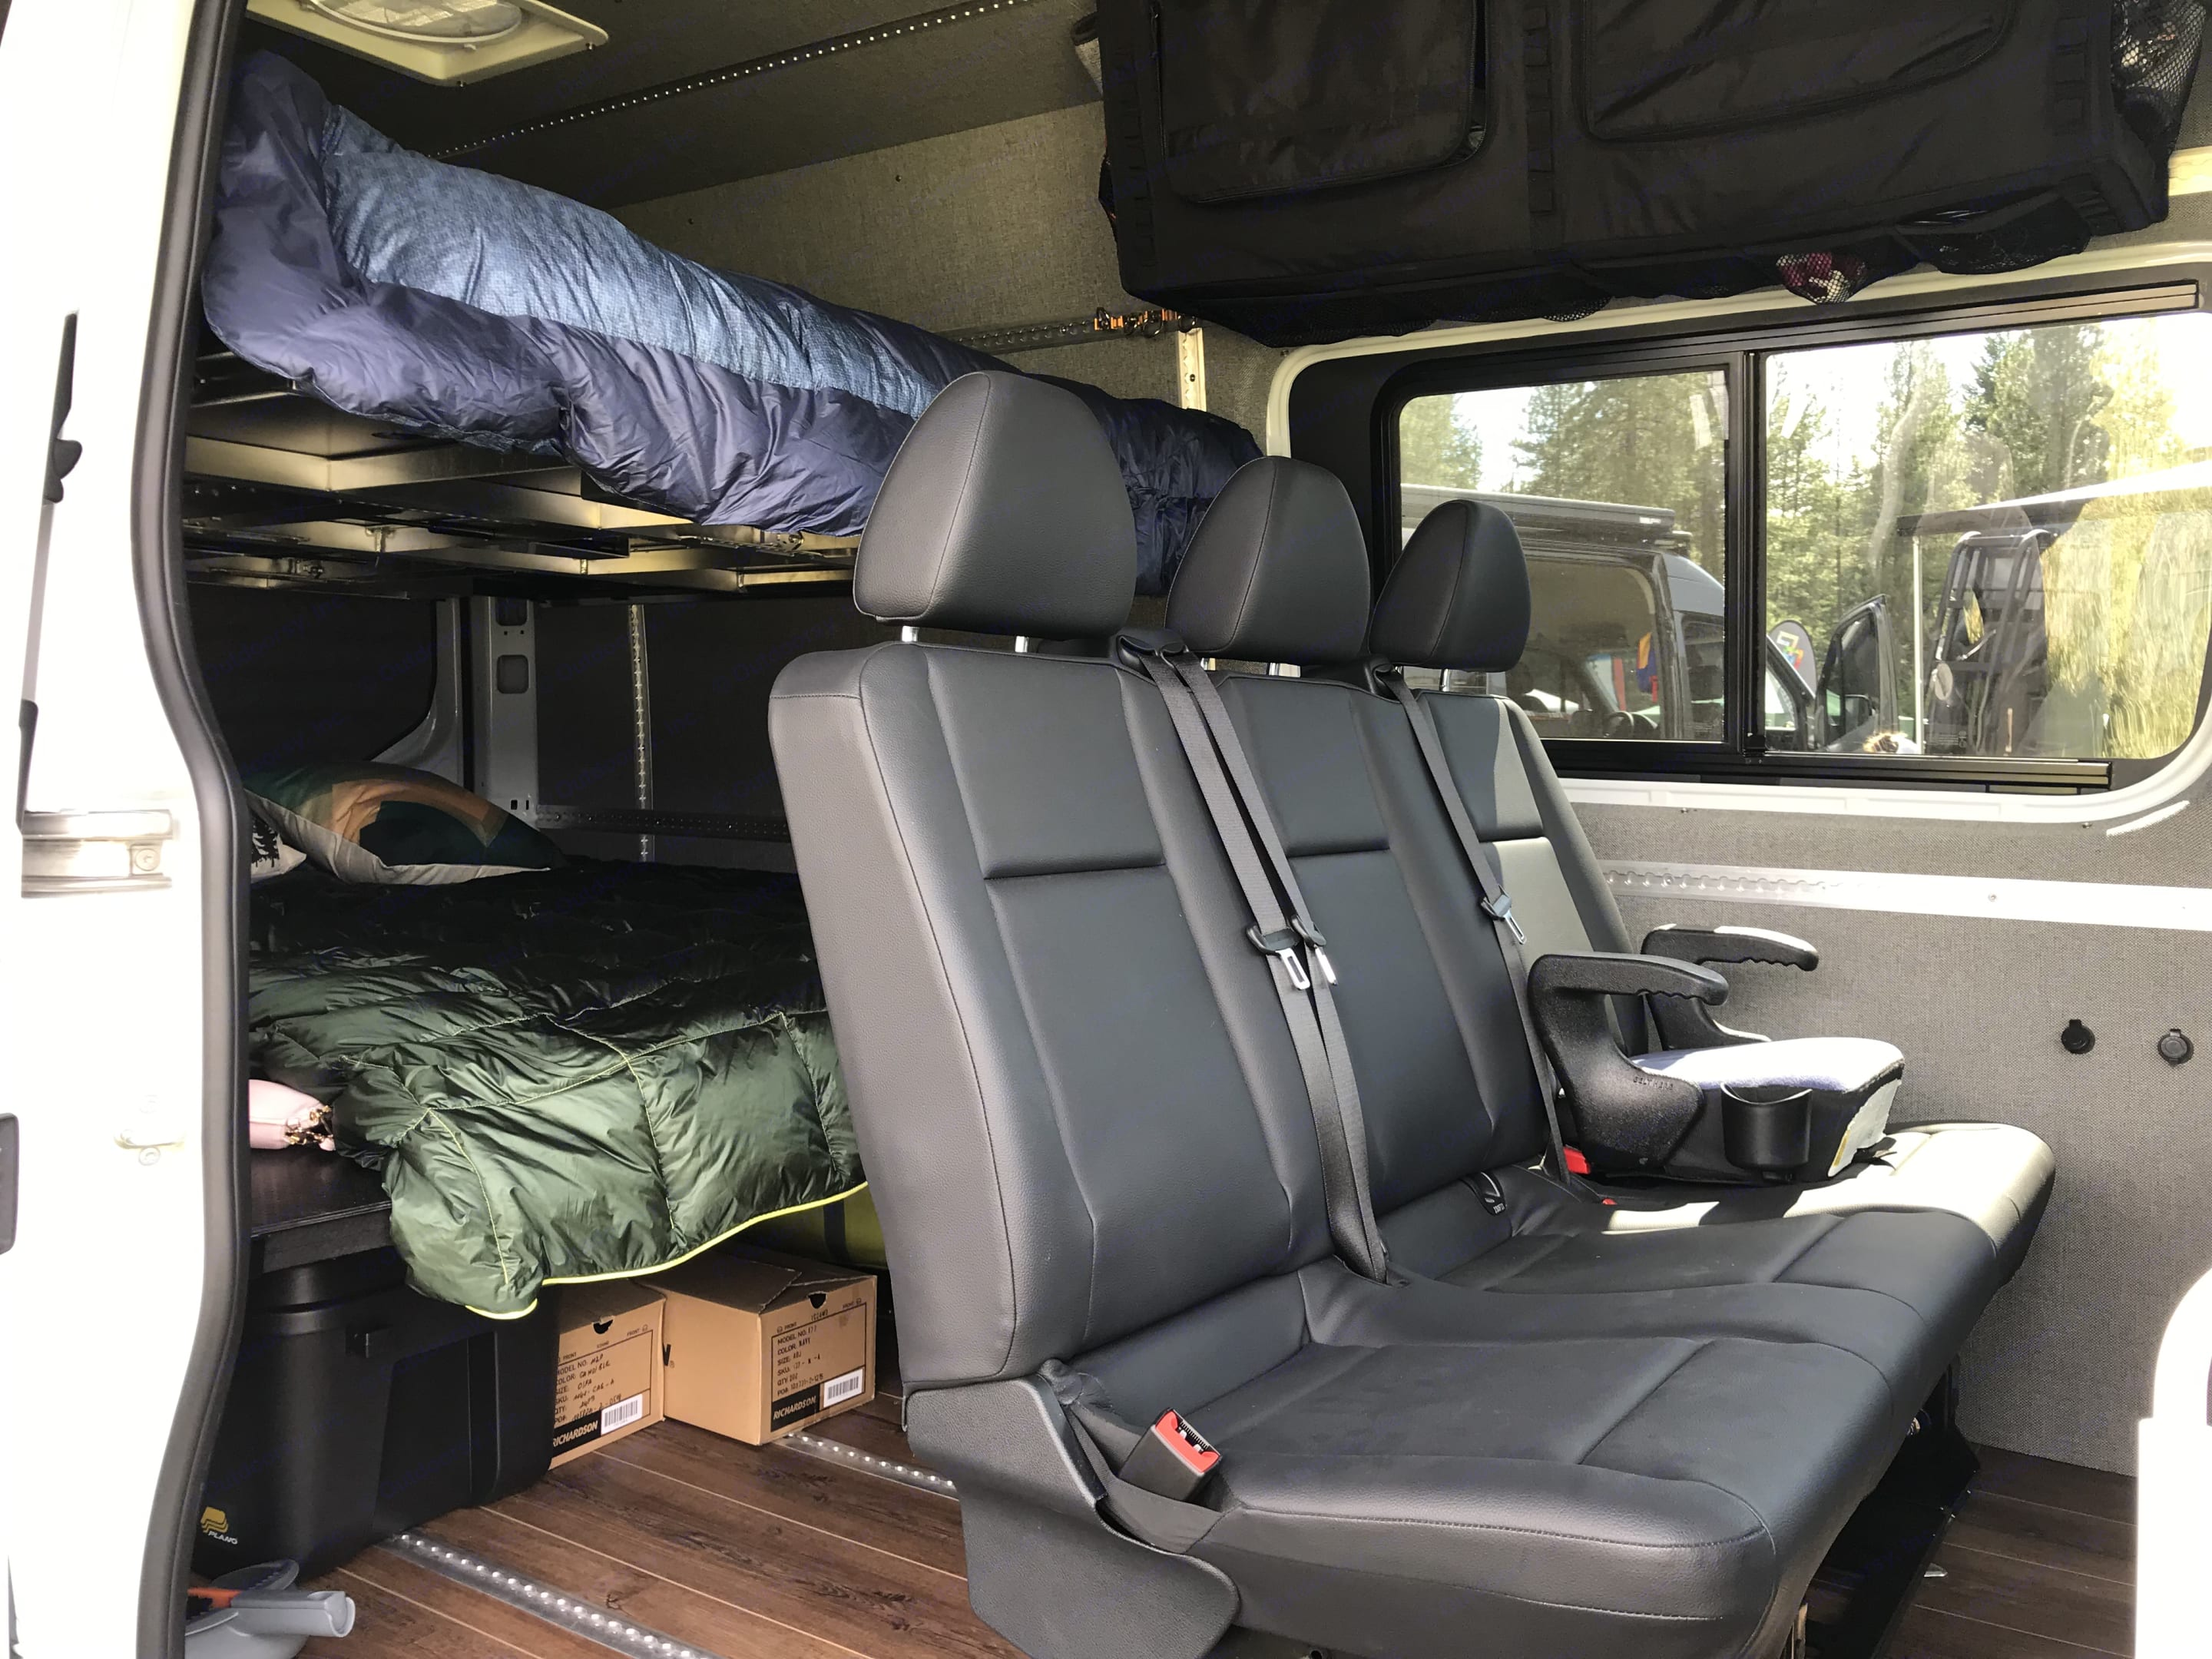 Bench seat can be moved forward, backward, or completely removed. Mercedes-Benz Sprinter 2019